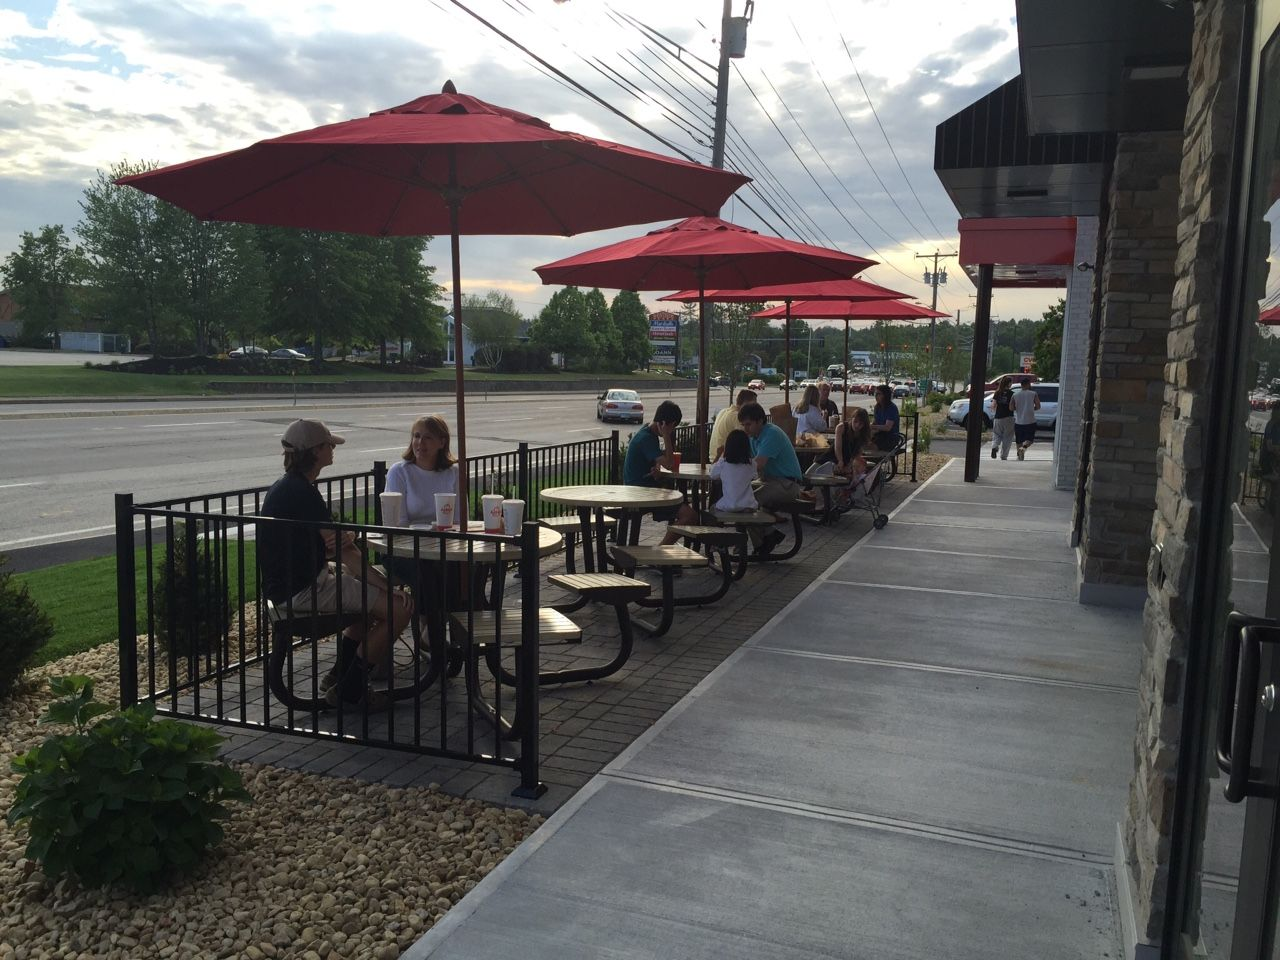 People eating at an outdoor restaurant